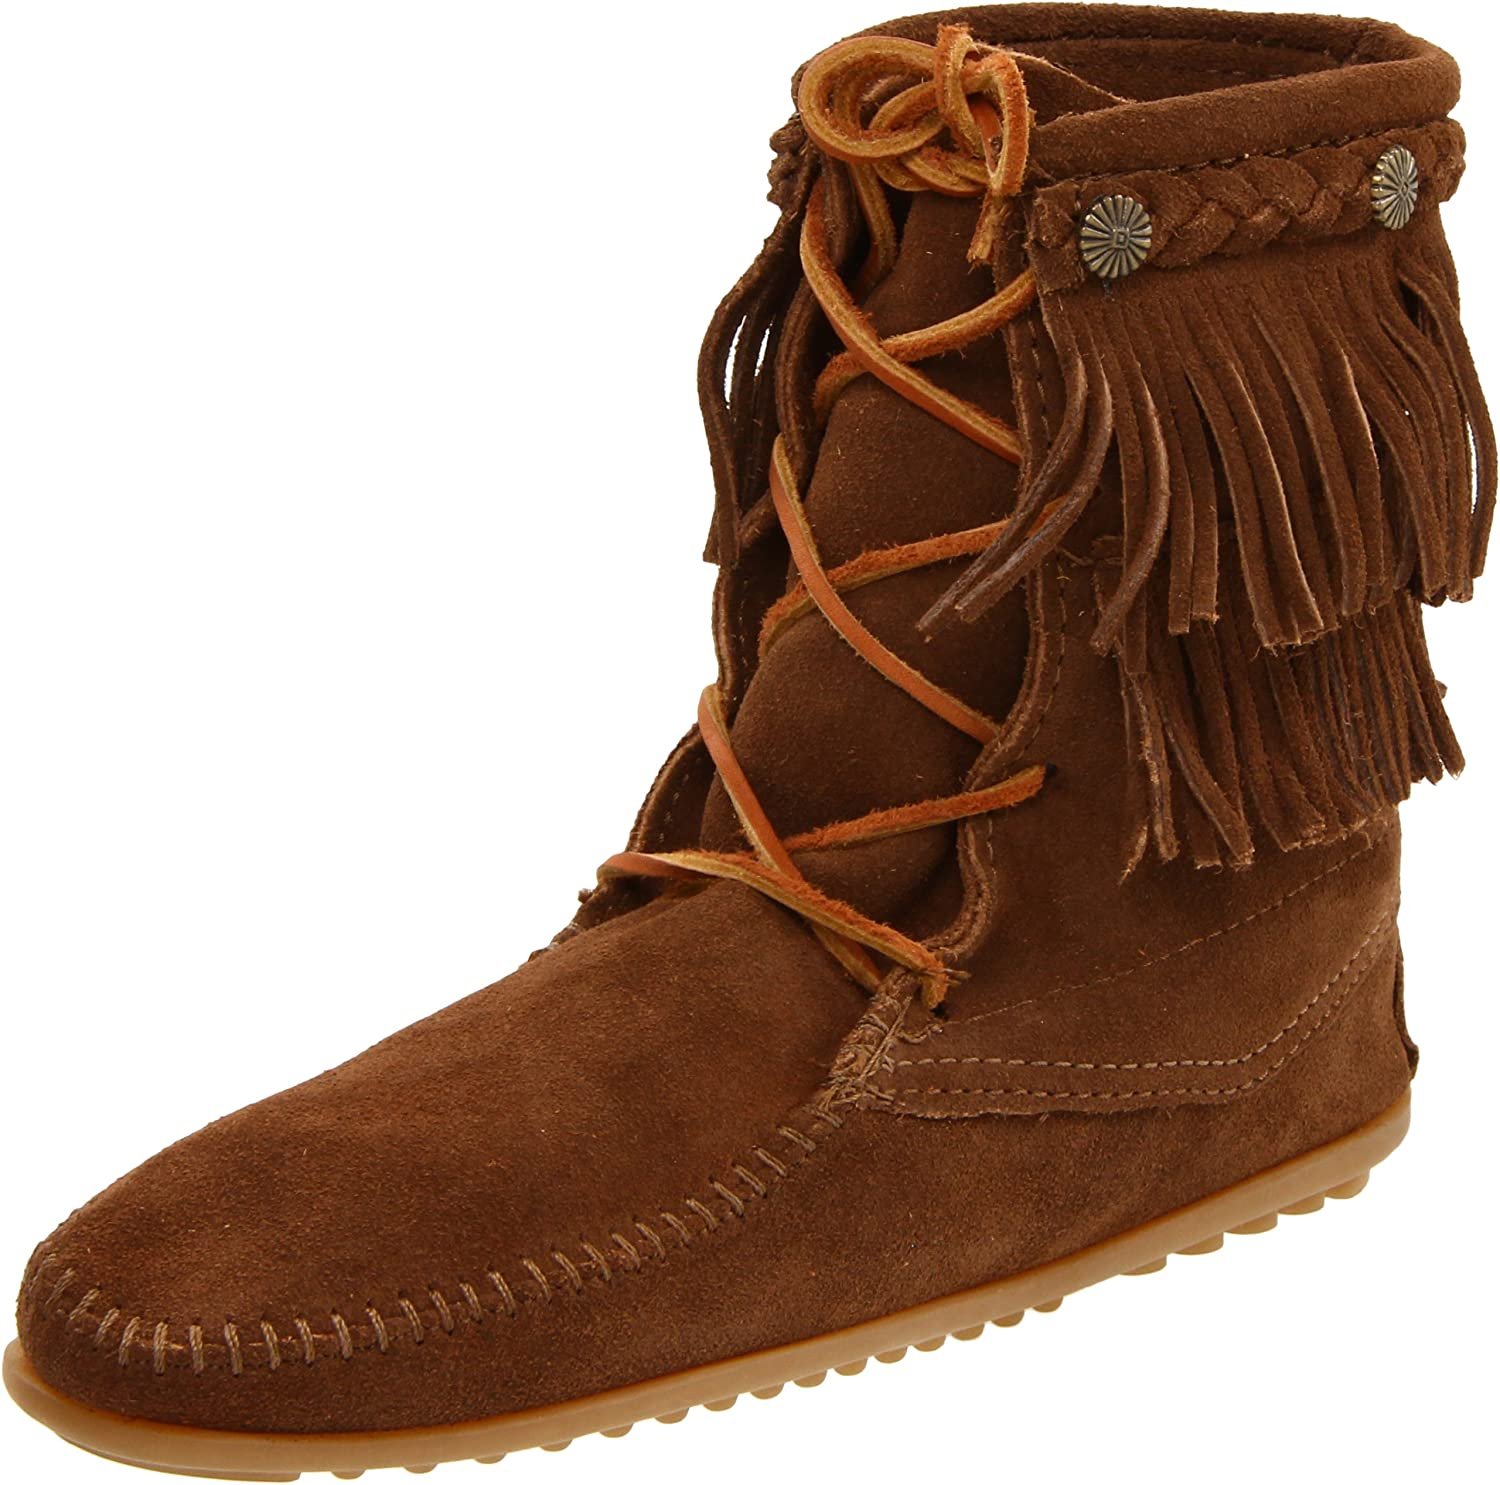 Minnetonka Women's Ankle Hi Tramper Boot B004UEJ044 11 B(M) US|Dusty Brown